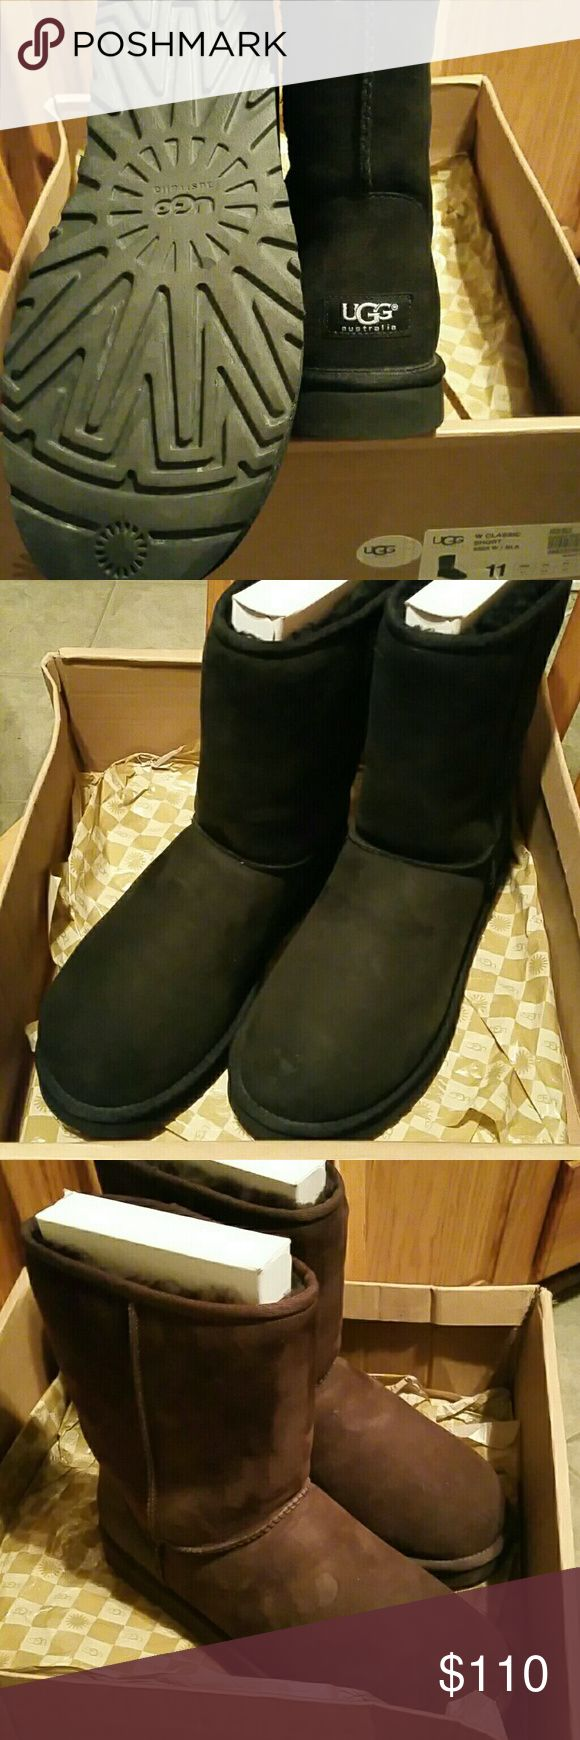 UGG Classic Short Boots Black or Brown, Size: 11, perfect condition! UGG Shoes Winter & Rain Boots